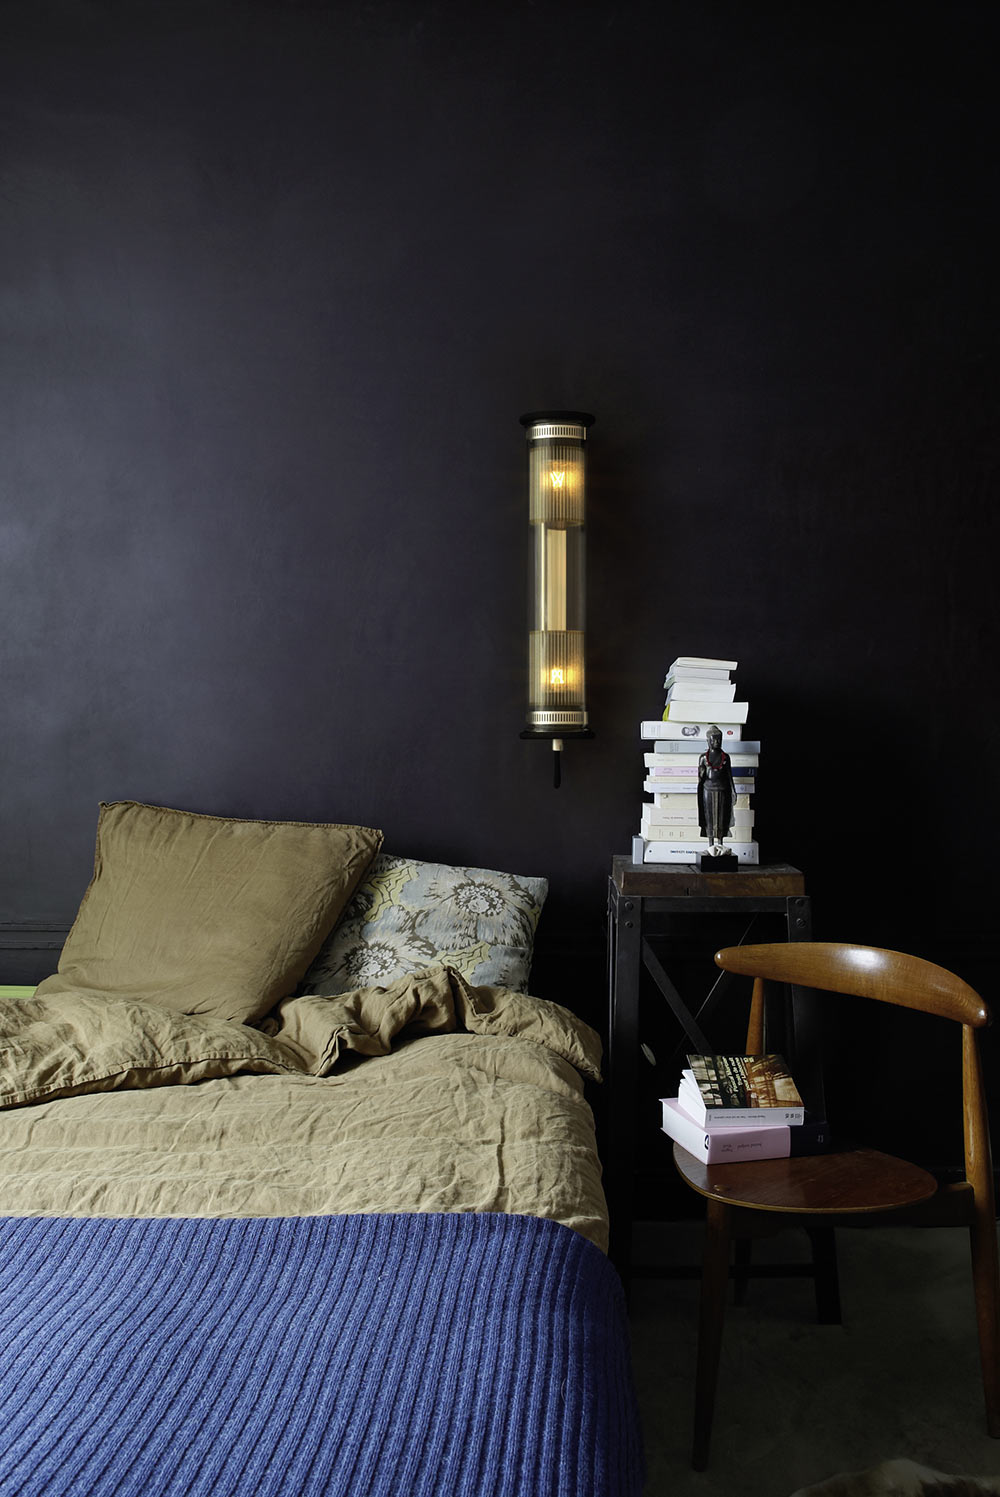 Interior Design Furniture And Lighting Import And Sales Of